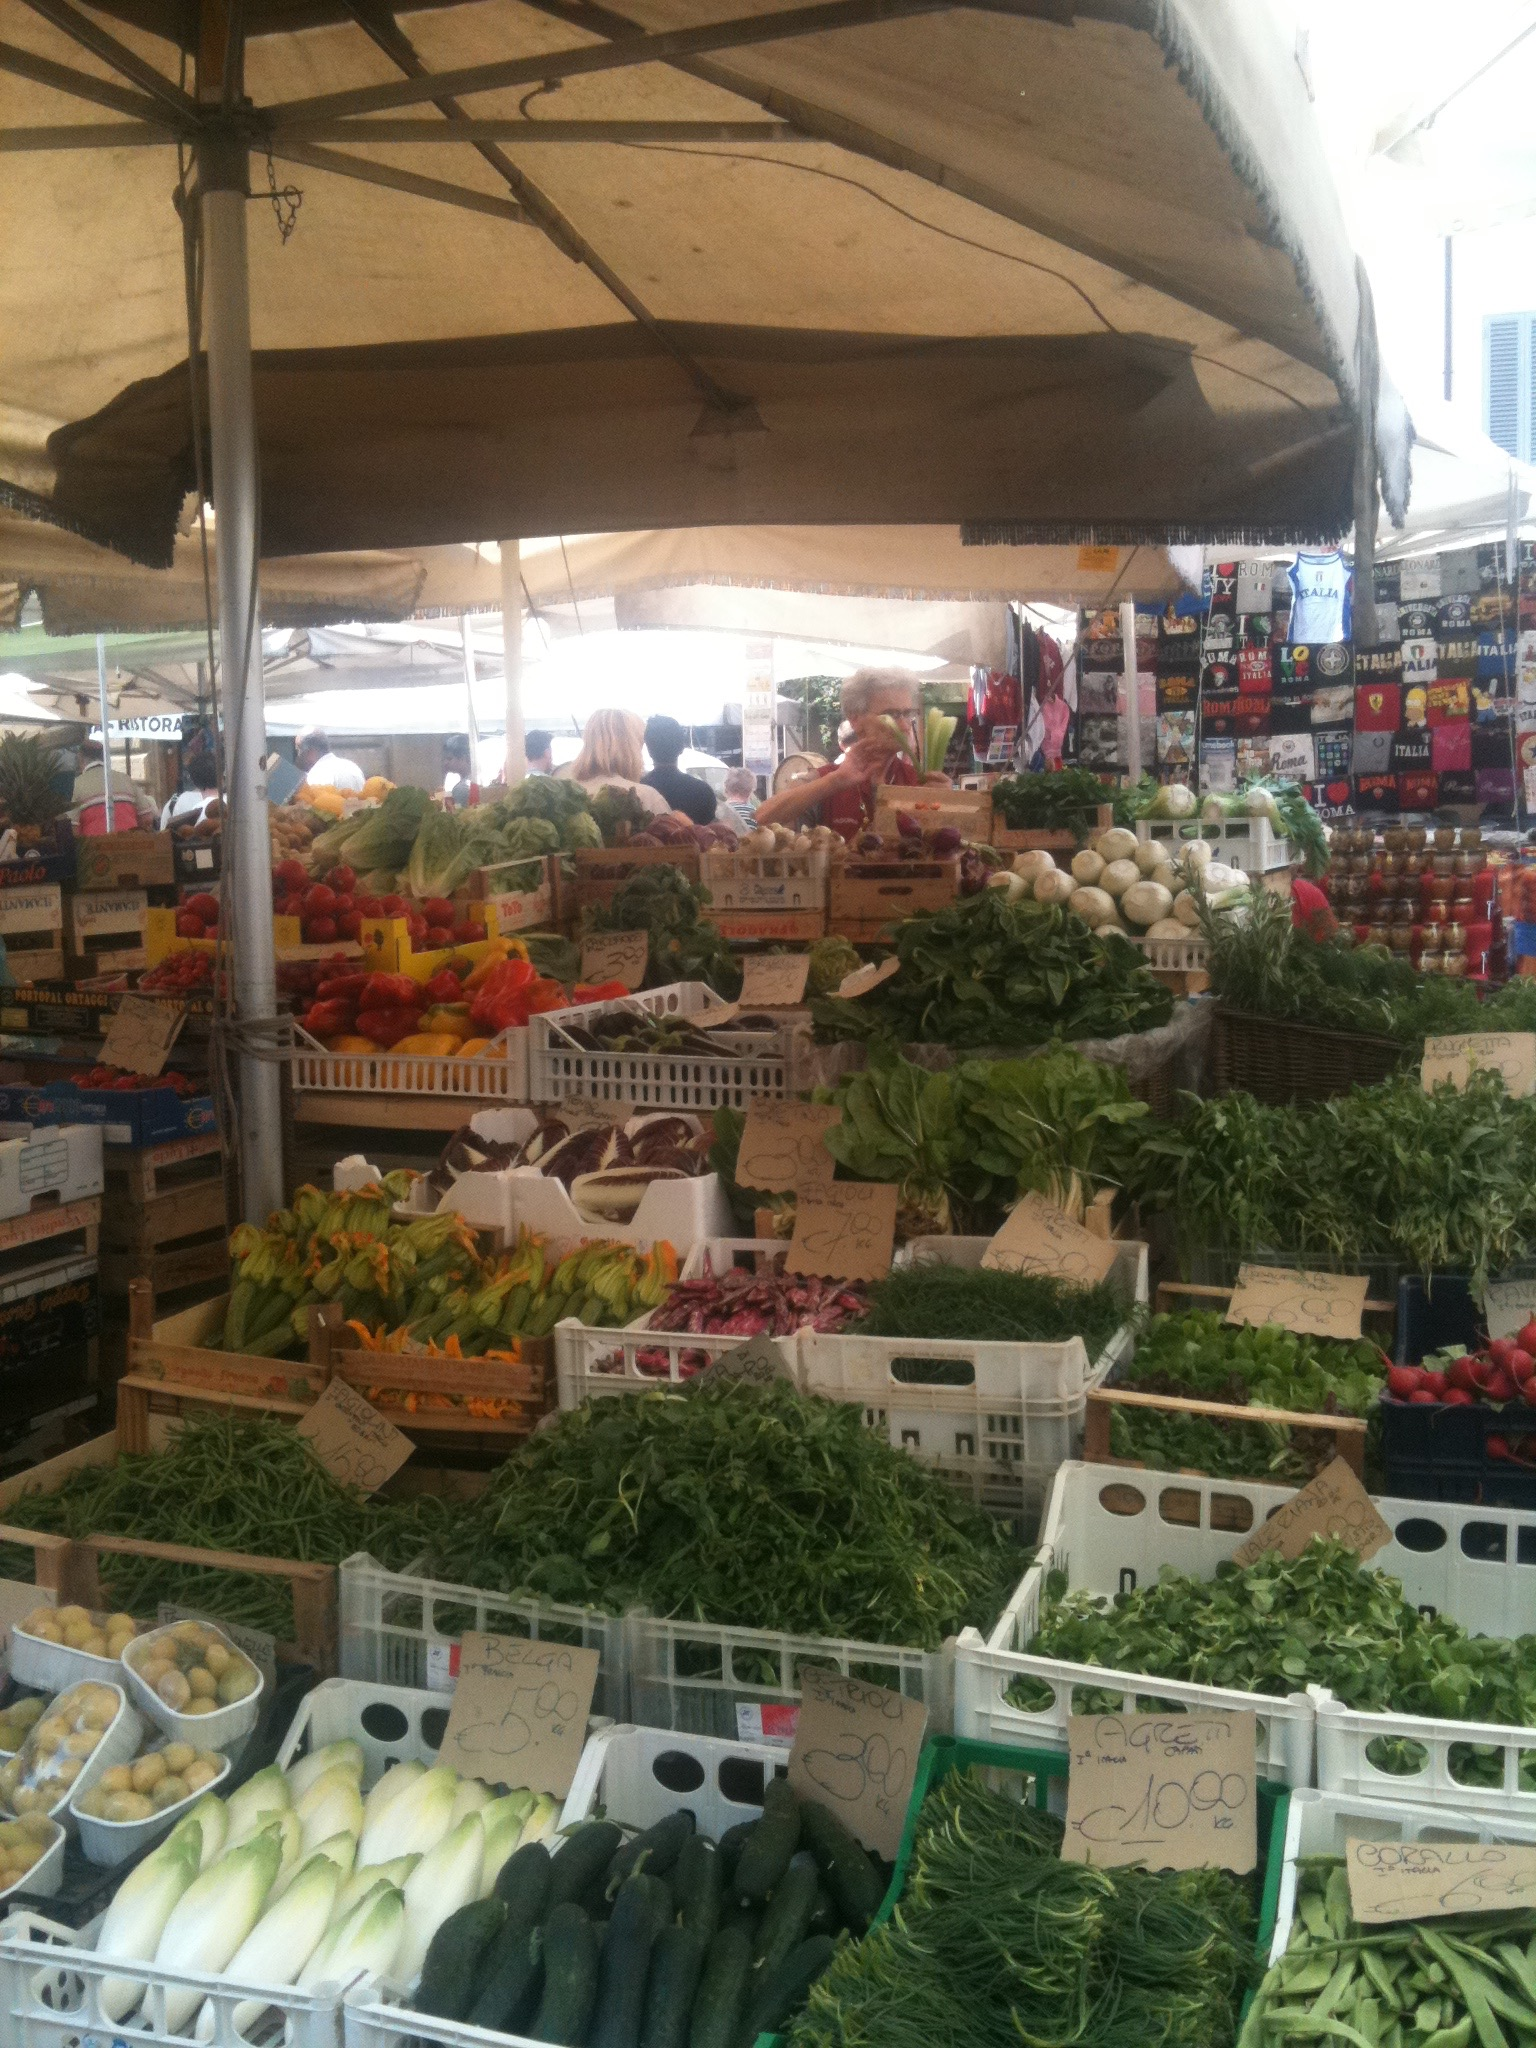 Farmers Market in Rome, Italy sourcing food for the next leg